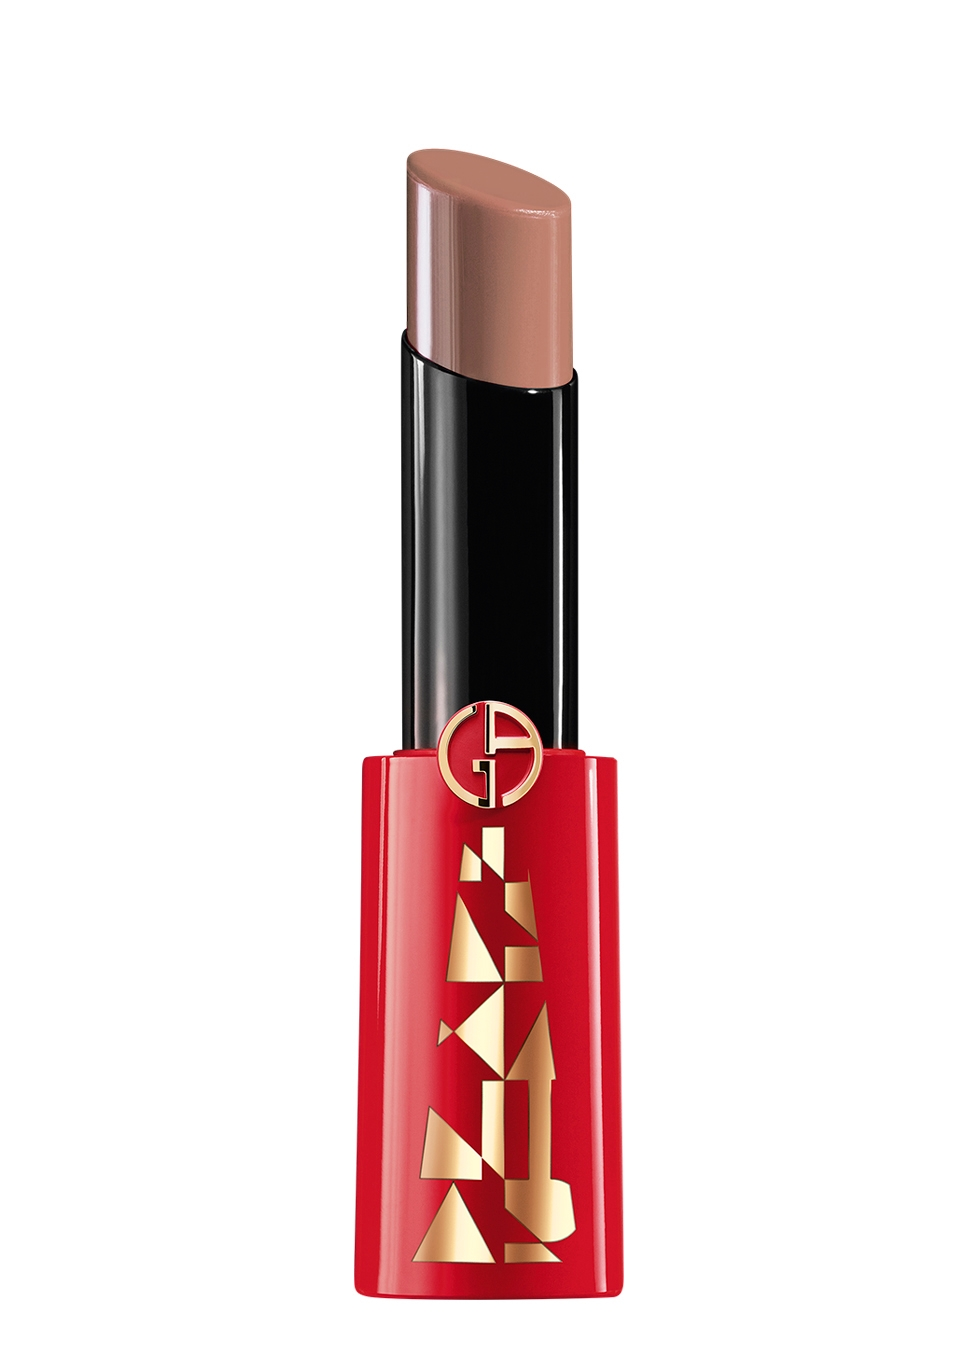 Ecstasy Shine Limited Edition Lipstick - Armani Beauty